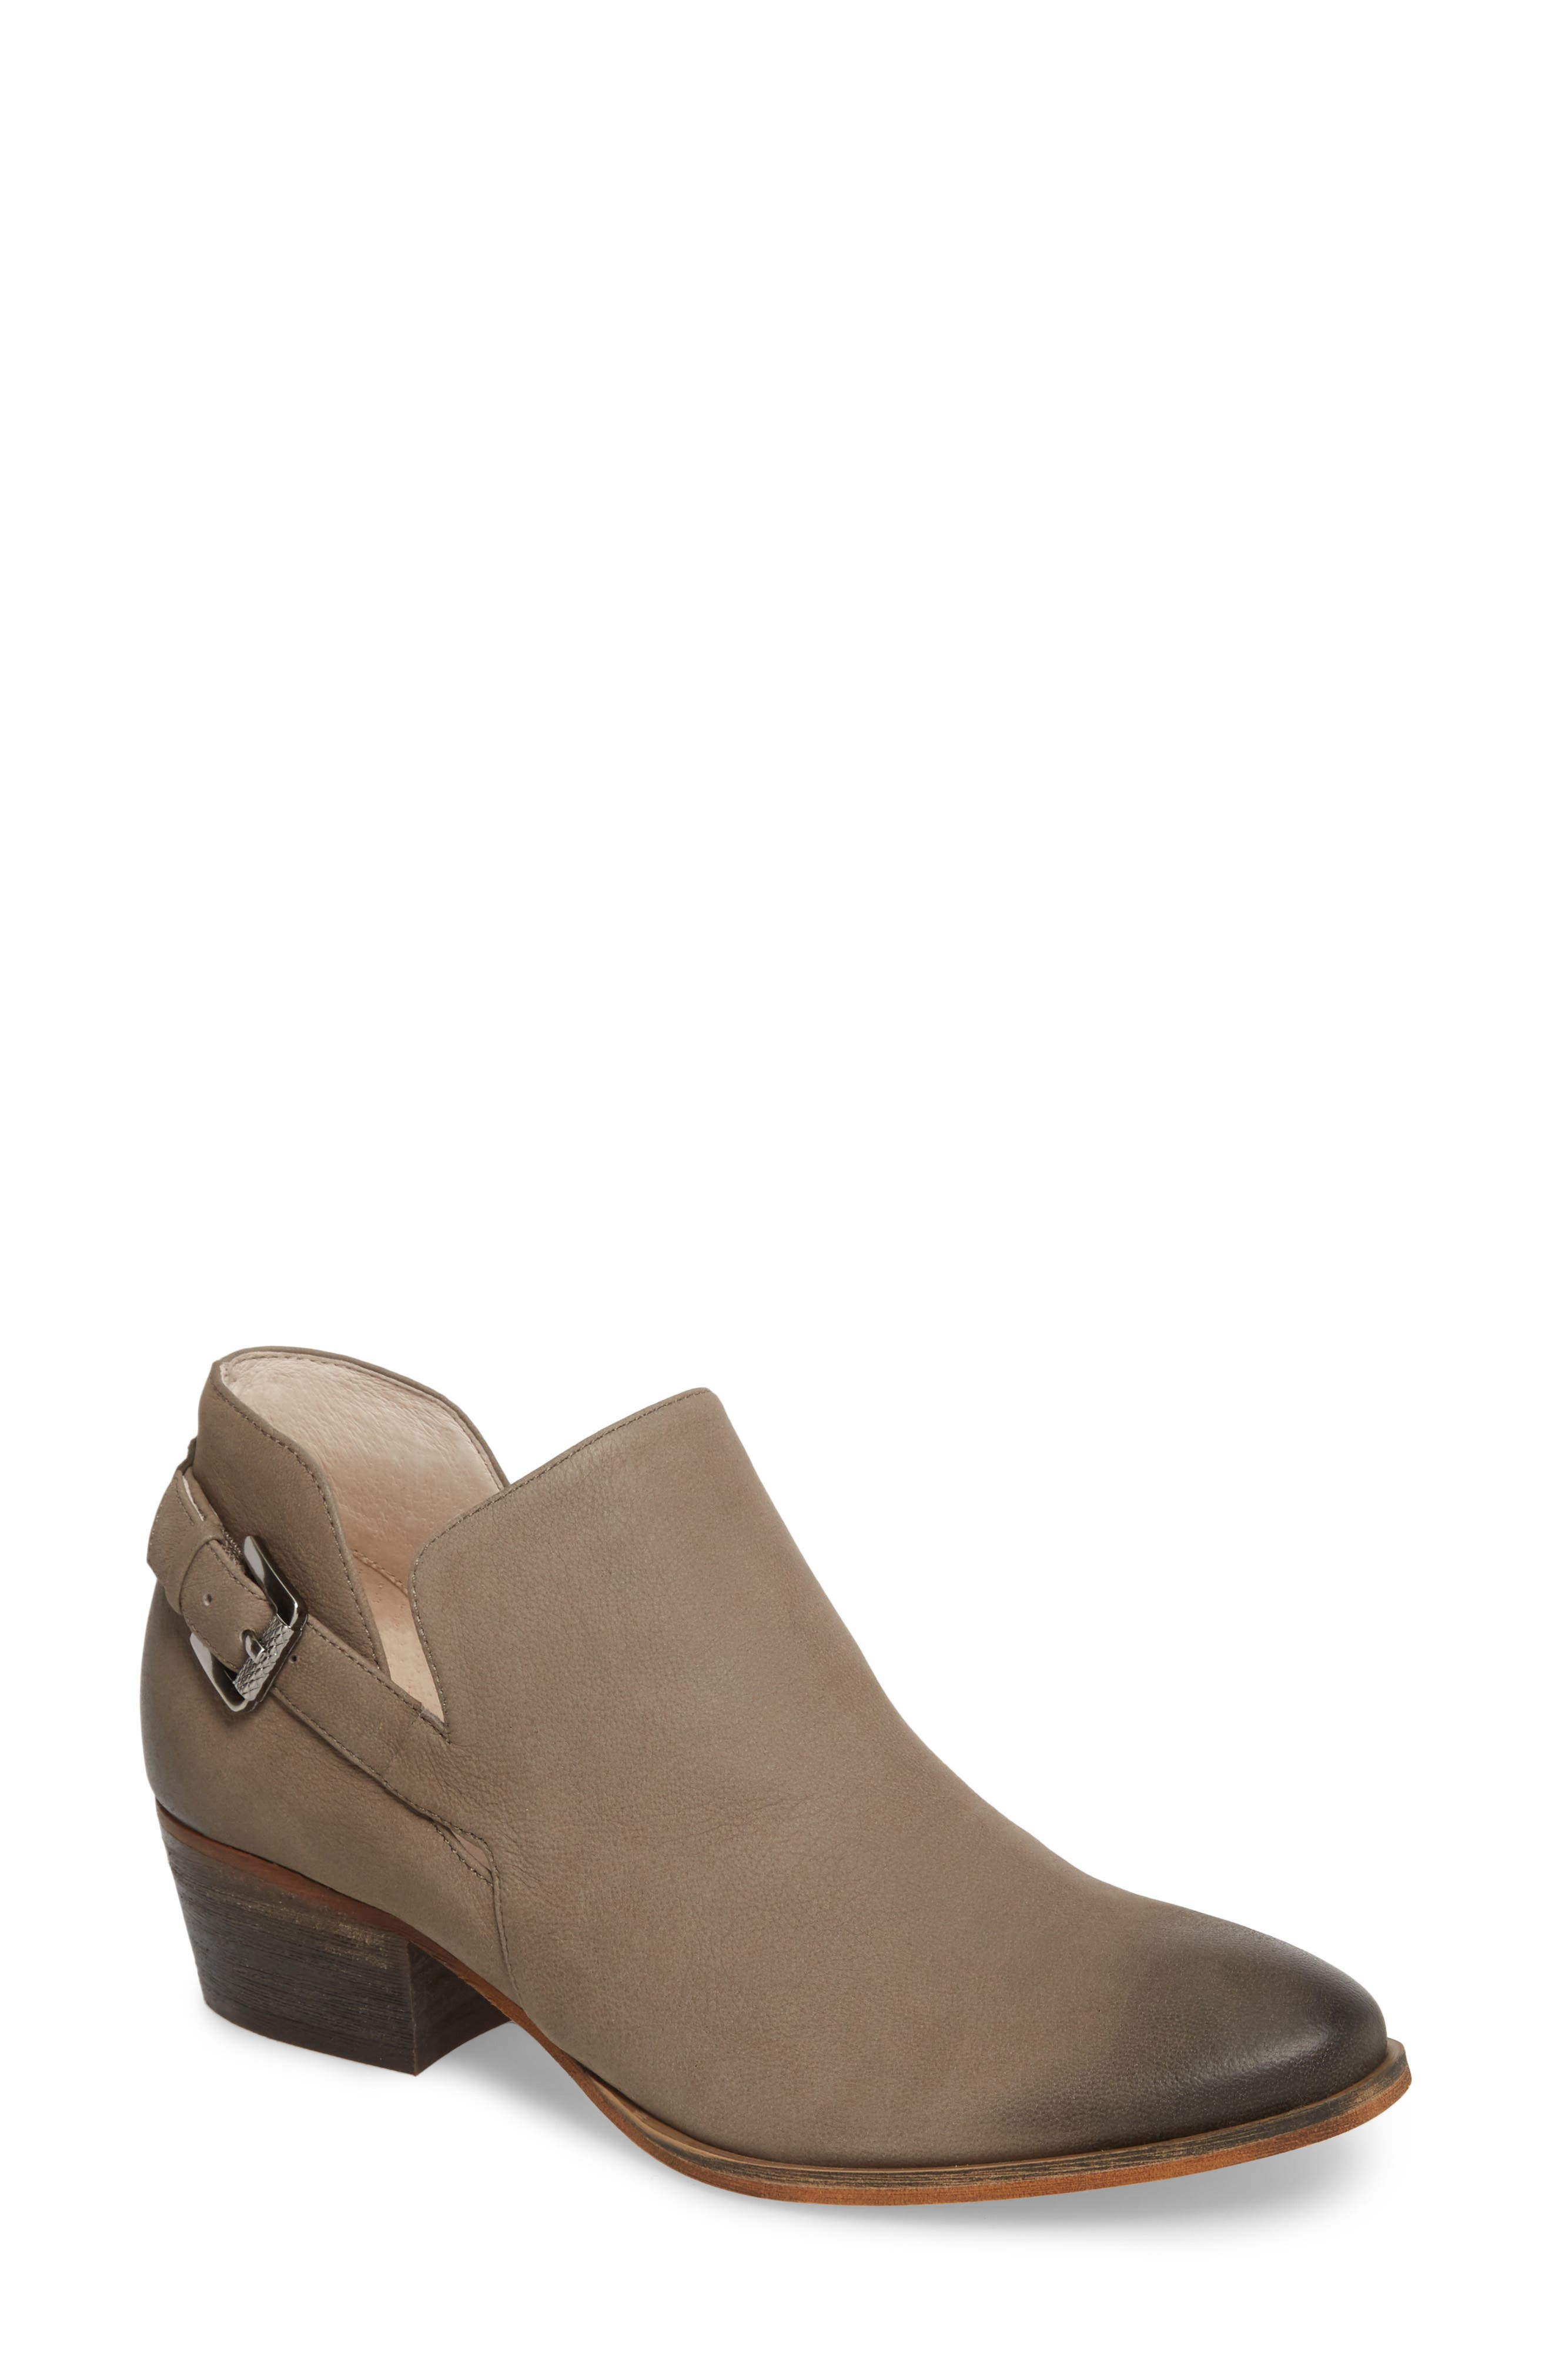 Toby Bootie,                         Main,                         color, Stone Oiled Nubuck